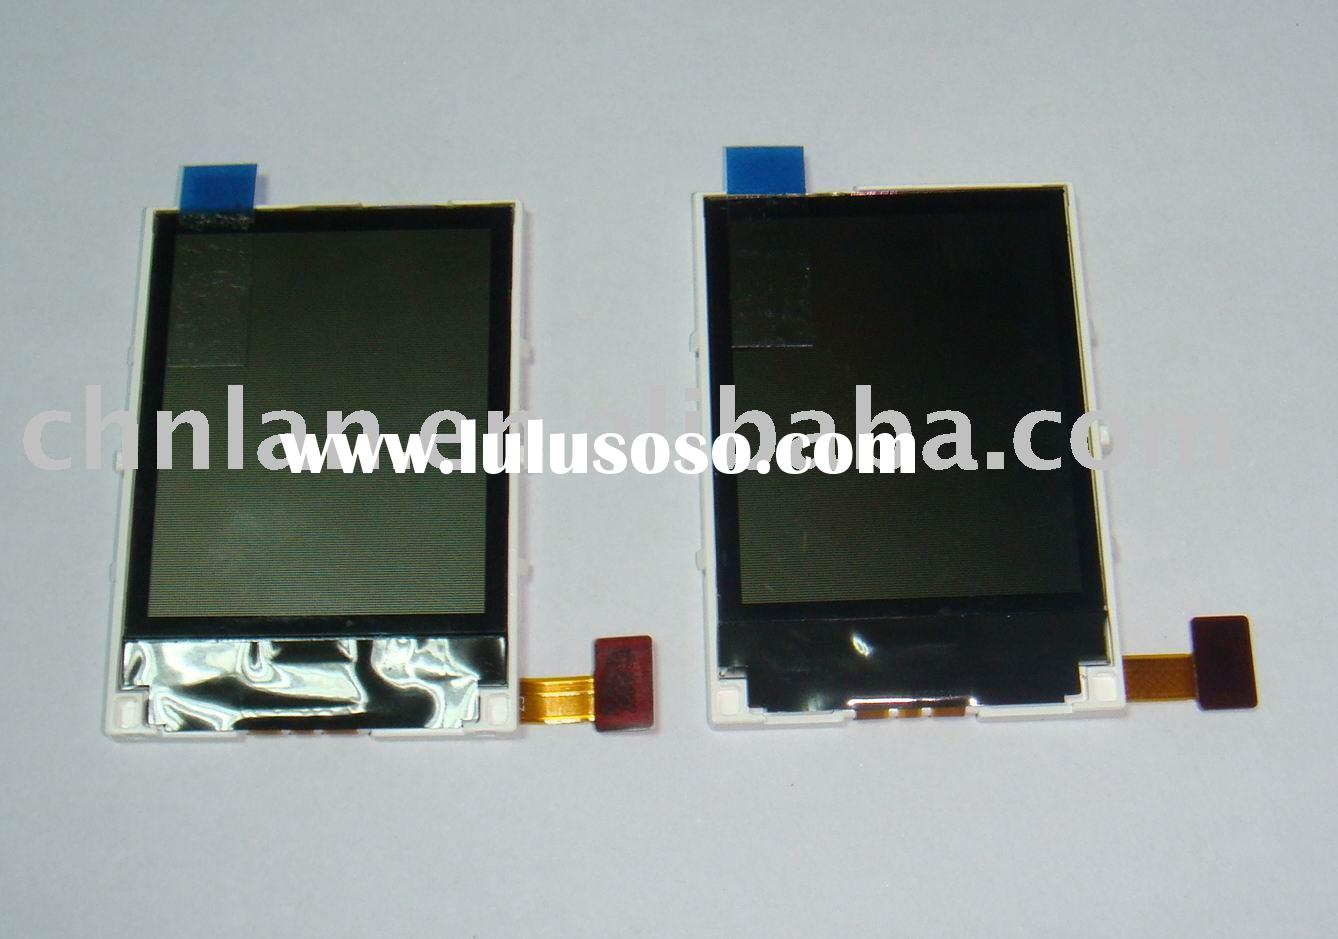 2630 lcd/mobile phone LCD for 2630 /mobile phone lcd display/mobile phone lcd screen/cell phone disp